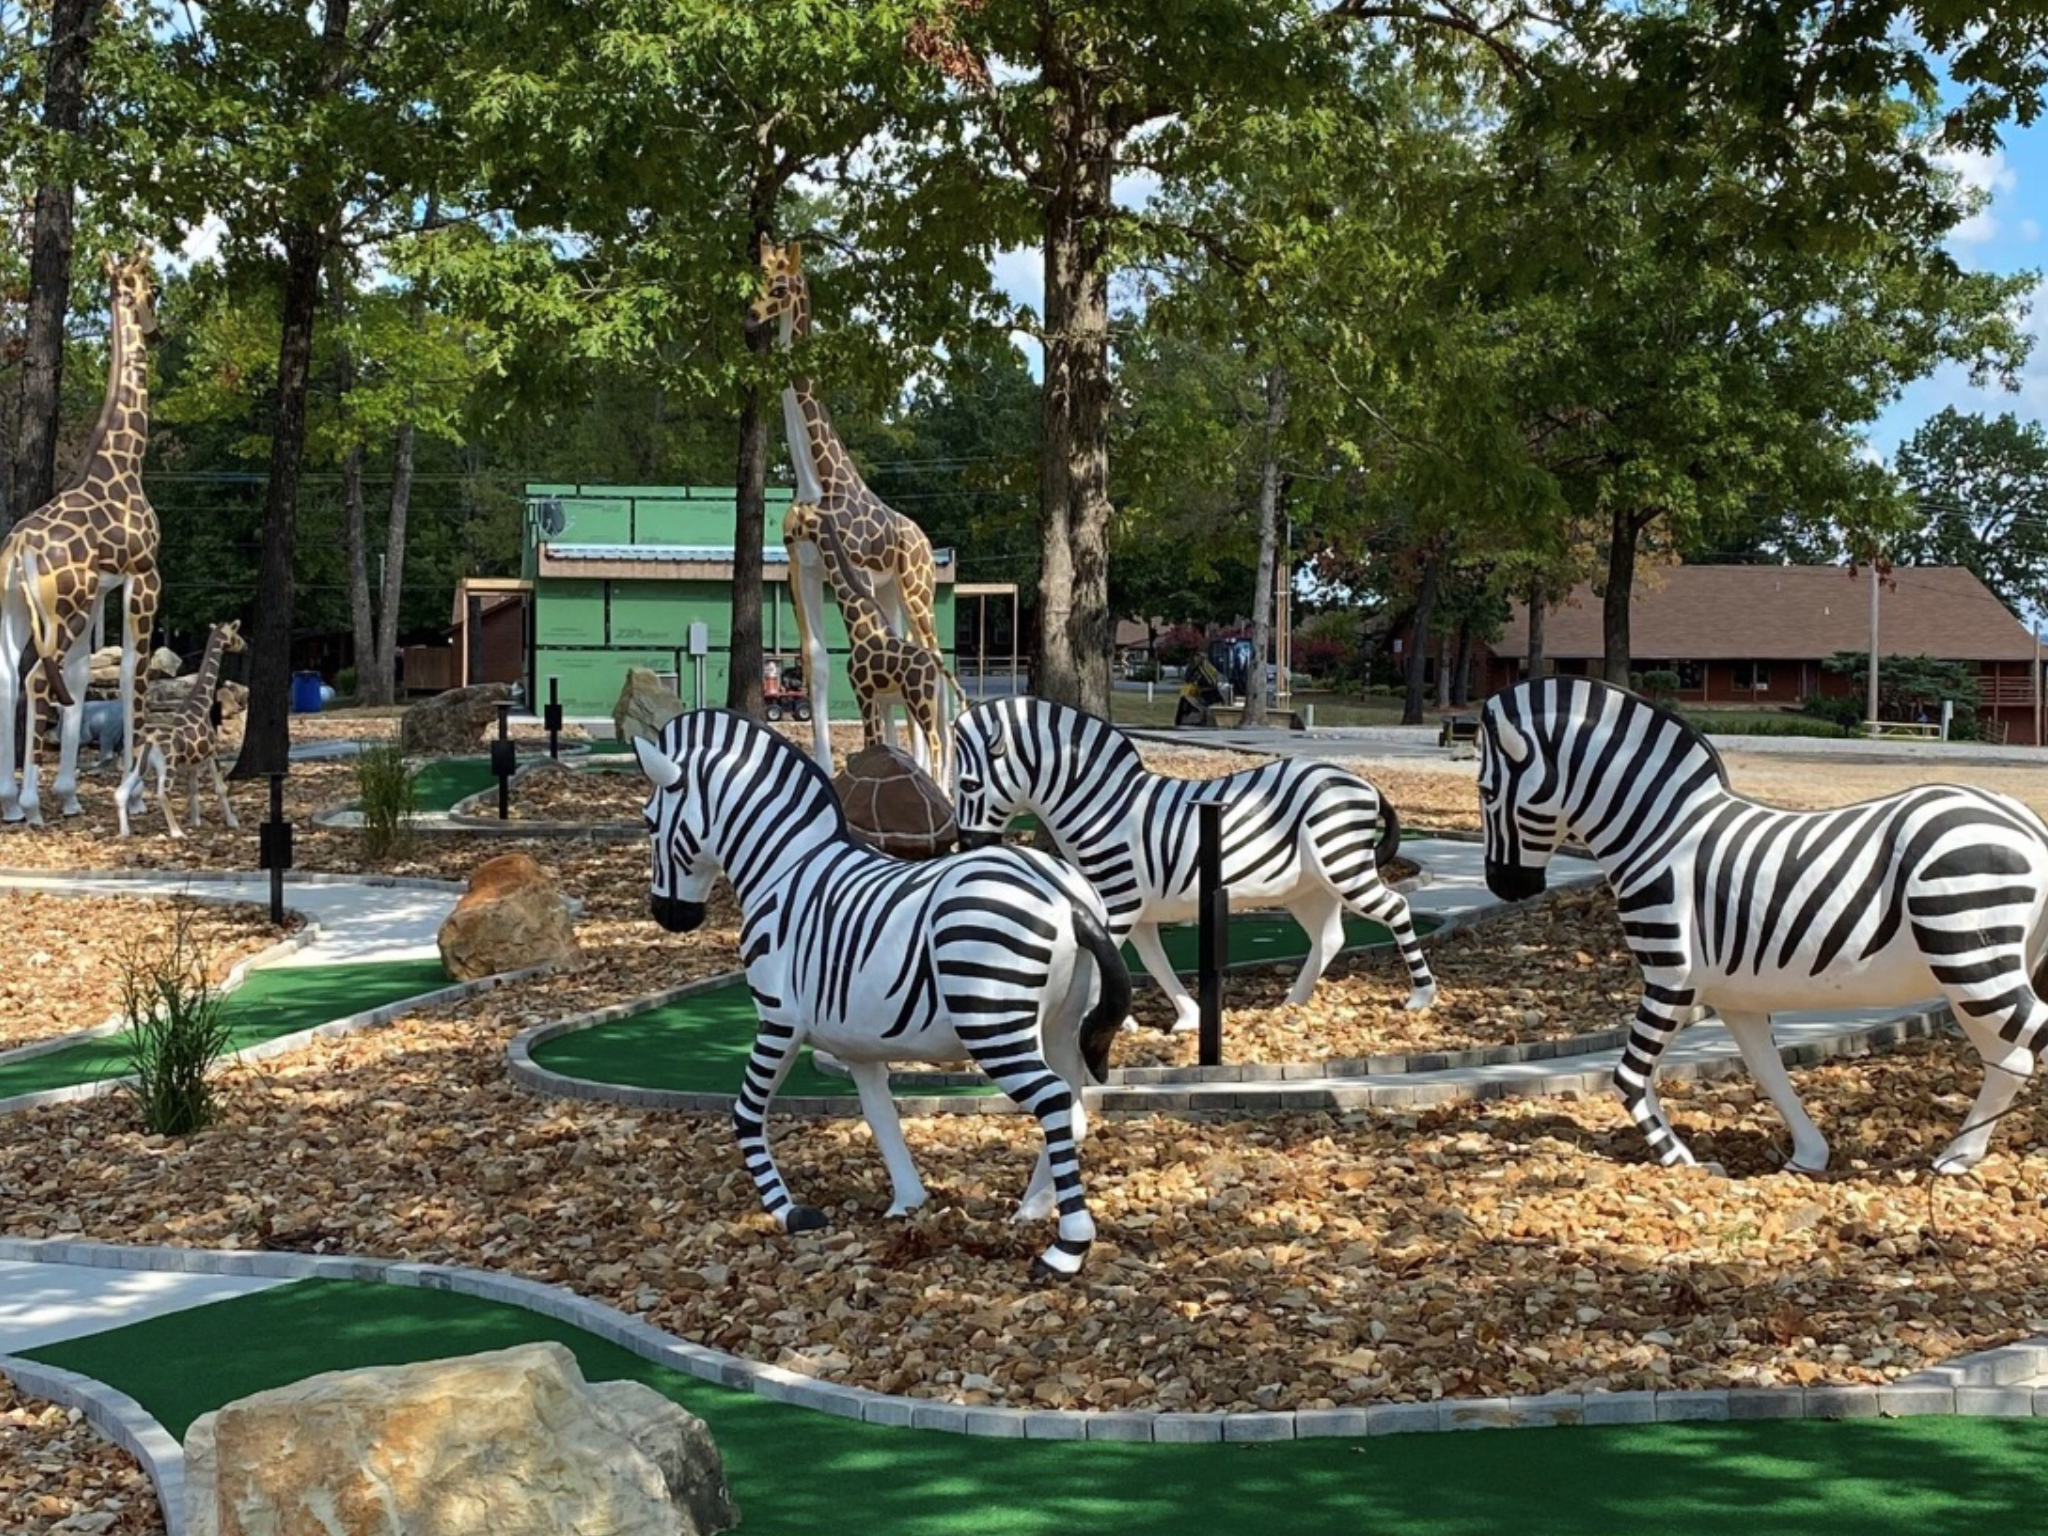 A playground with zebras and giraffe statues